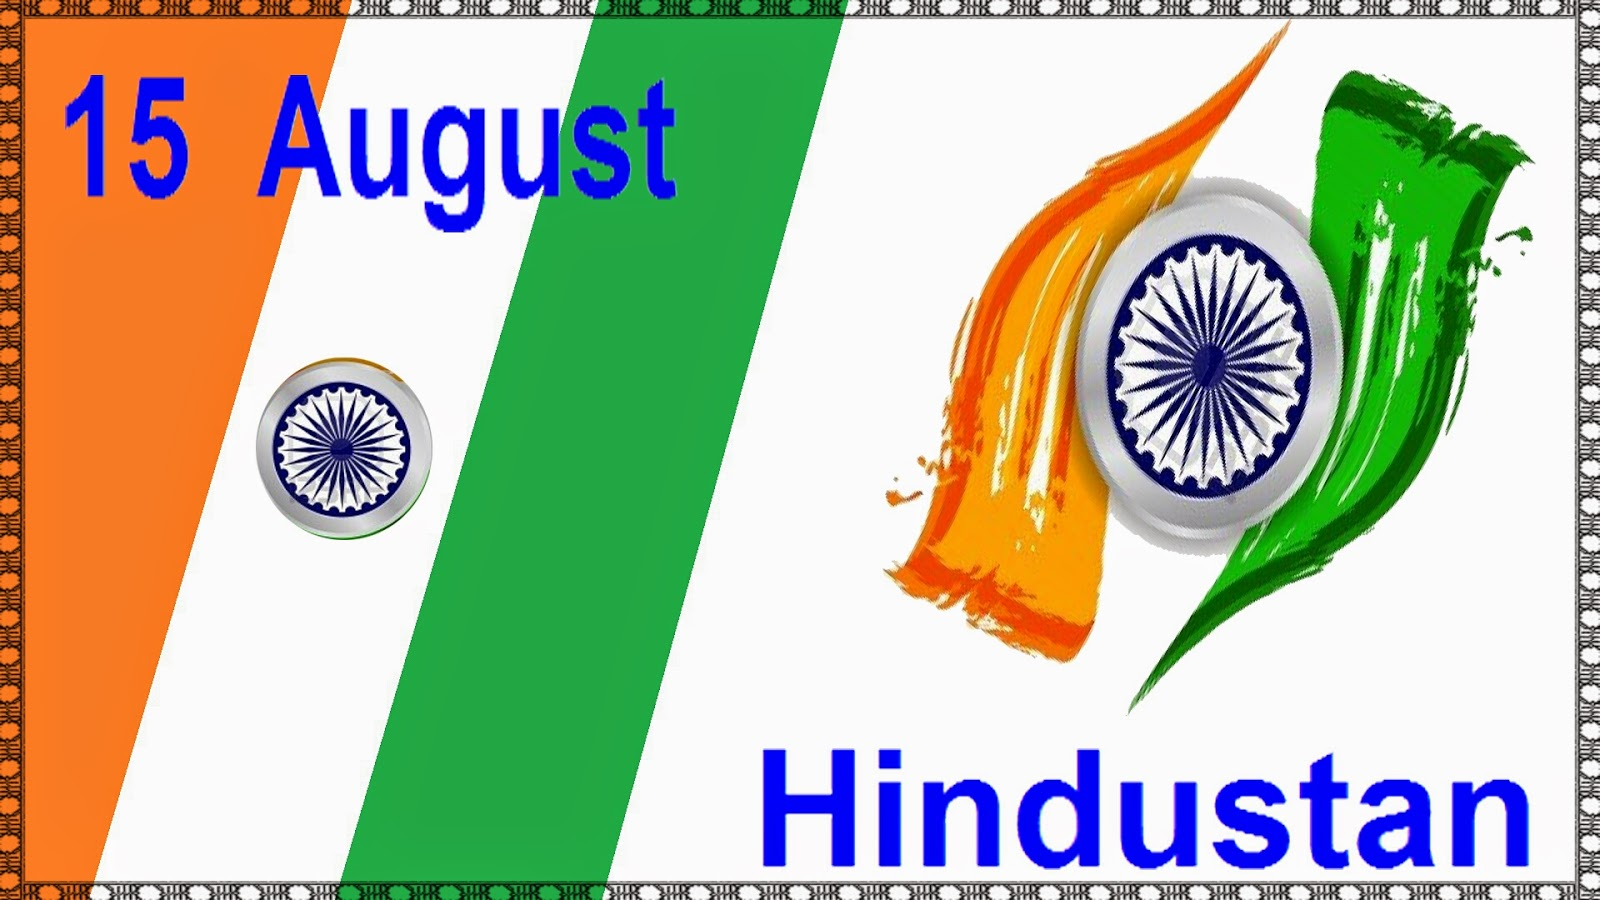 hindustan 15 august nice wallpaper